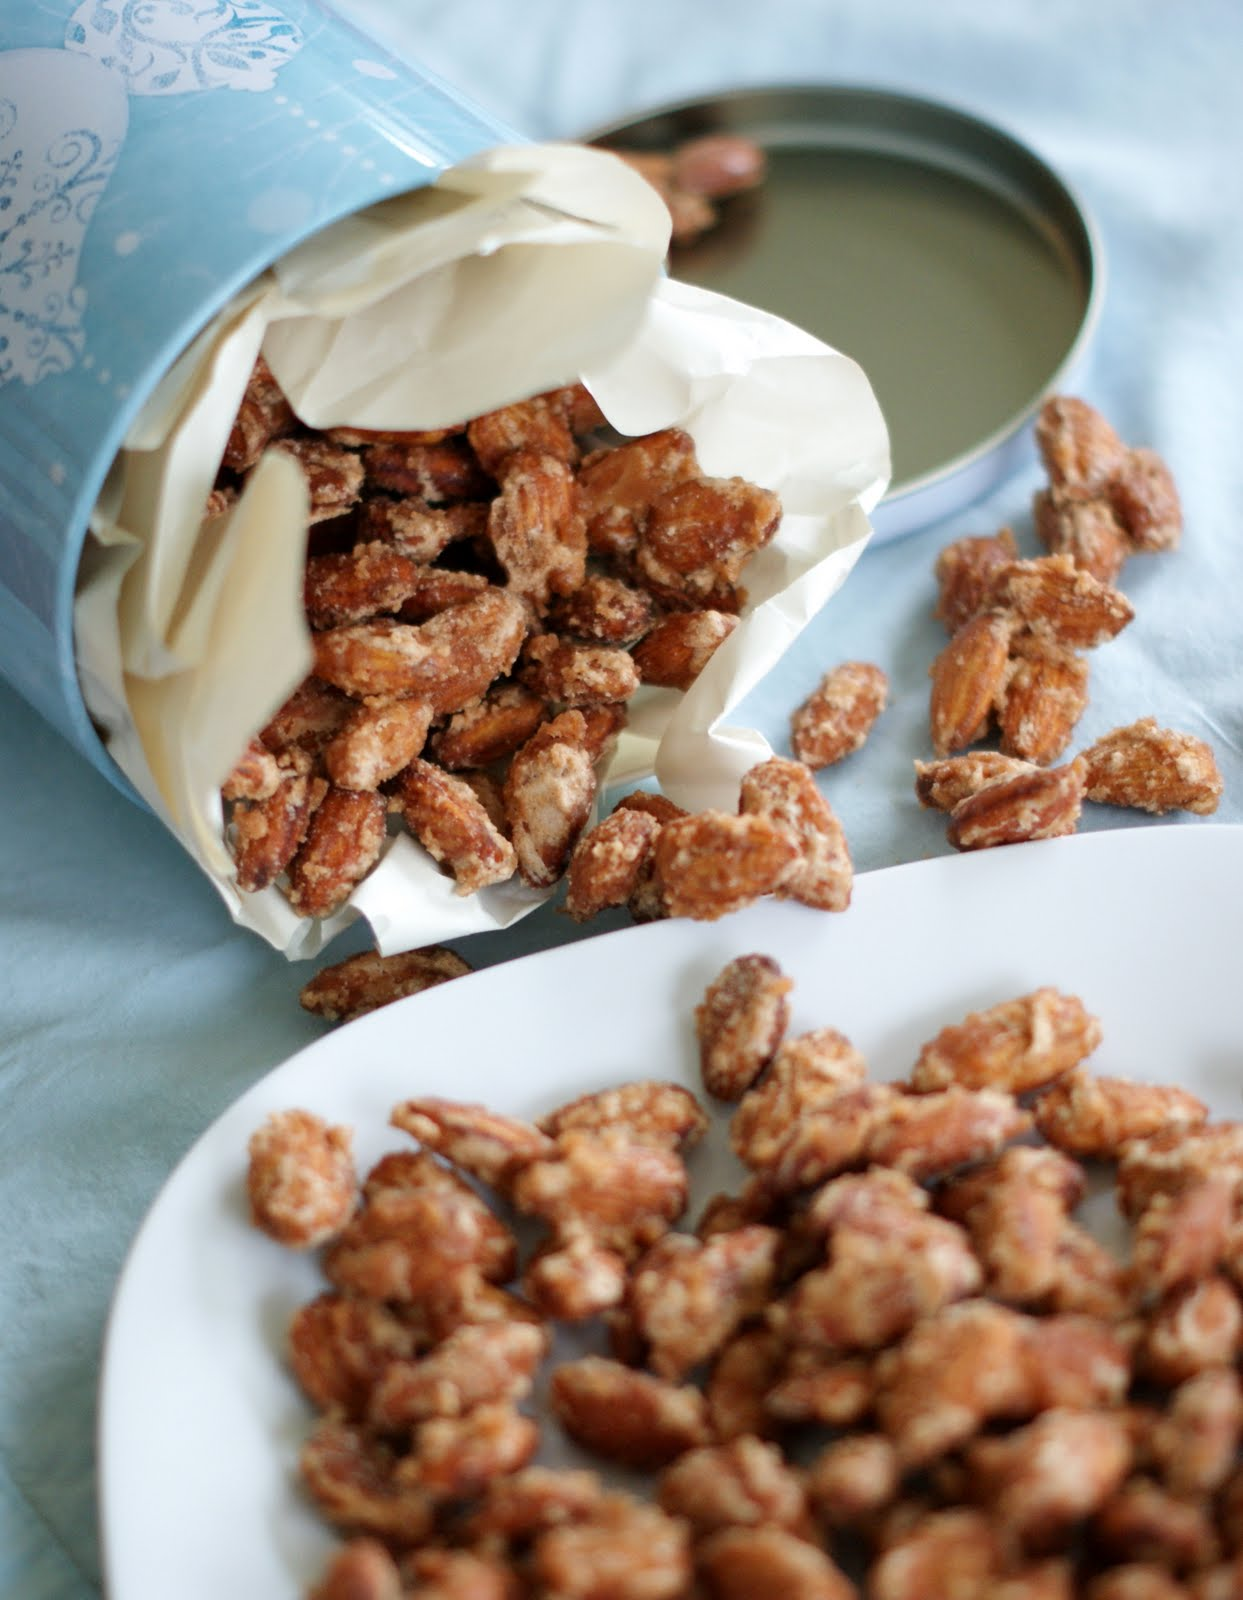 Alice and the Mock Turtle: Vanilla and Cinnamon Candied Nuts